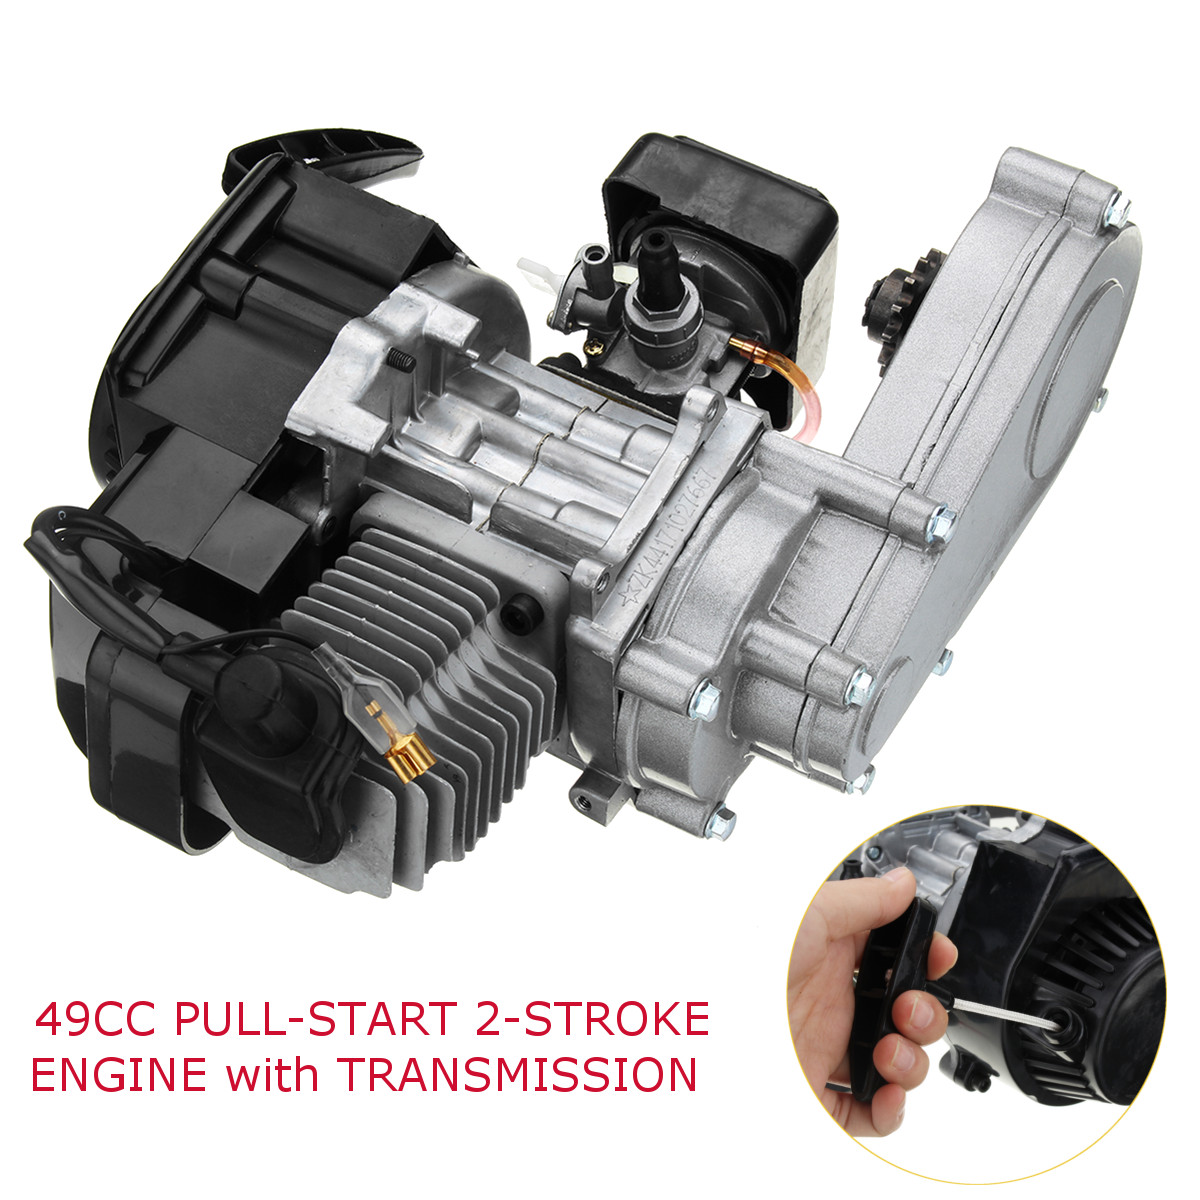 49cc Engine 2-Stroke Motor with Transmission For Pocket Bike Mini ATV Scooter Motorcycle49cc Engine 2-Stroke Motor with Transmission For Pocket Bike Mini ATV Scooter Motorcycle